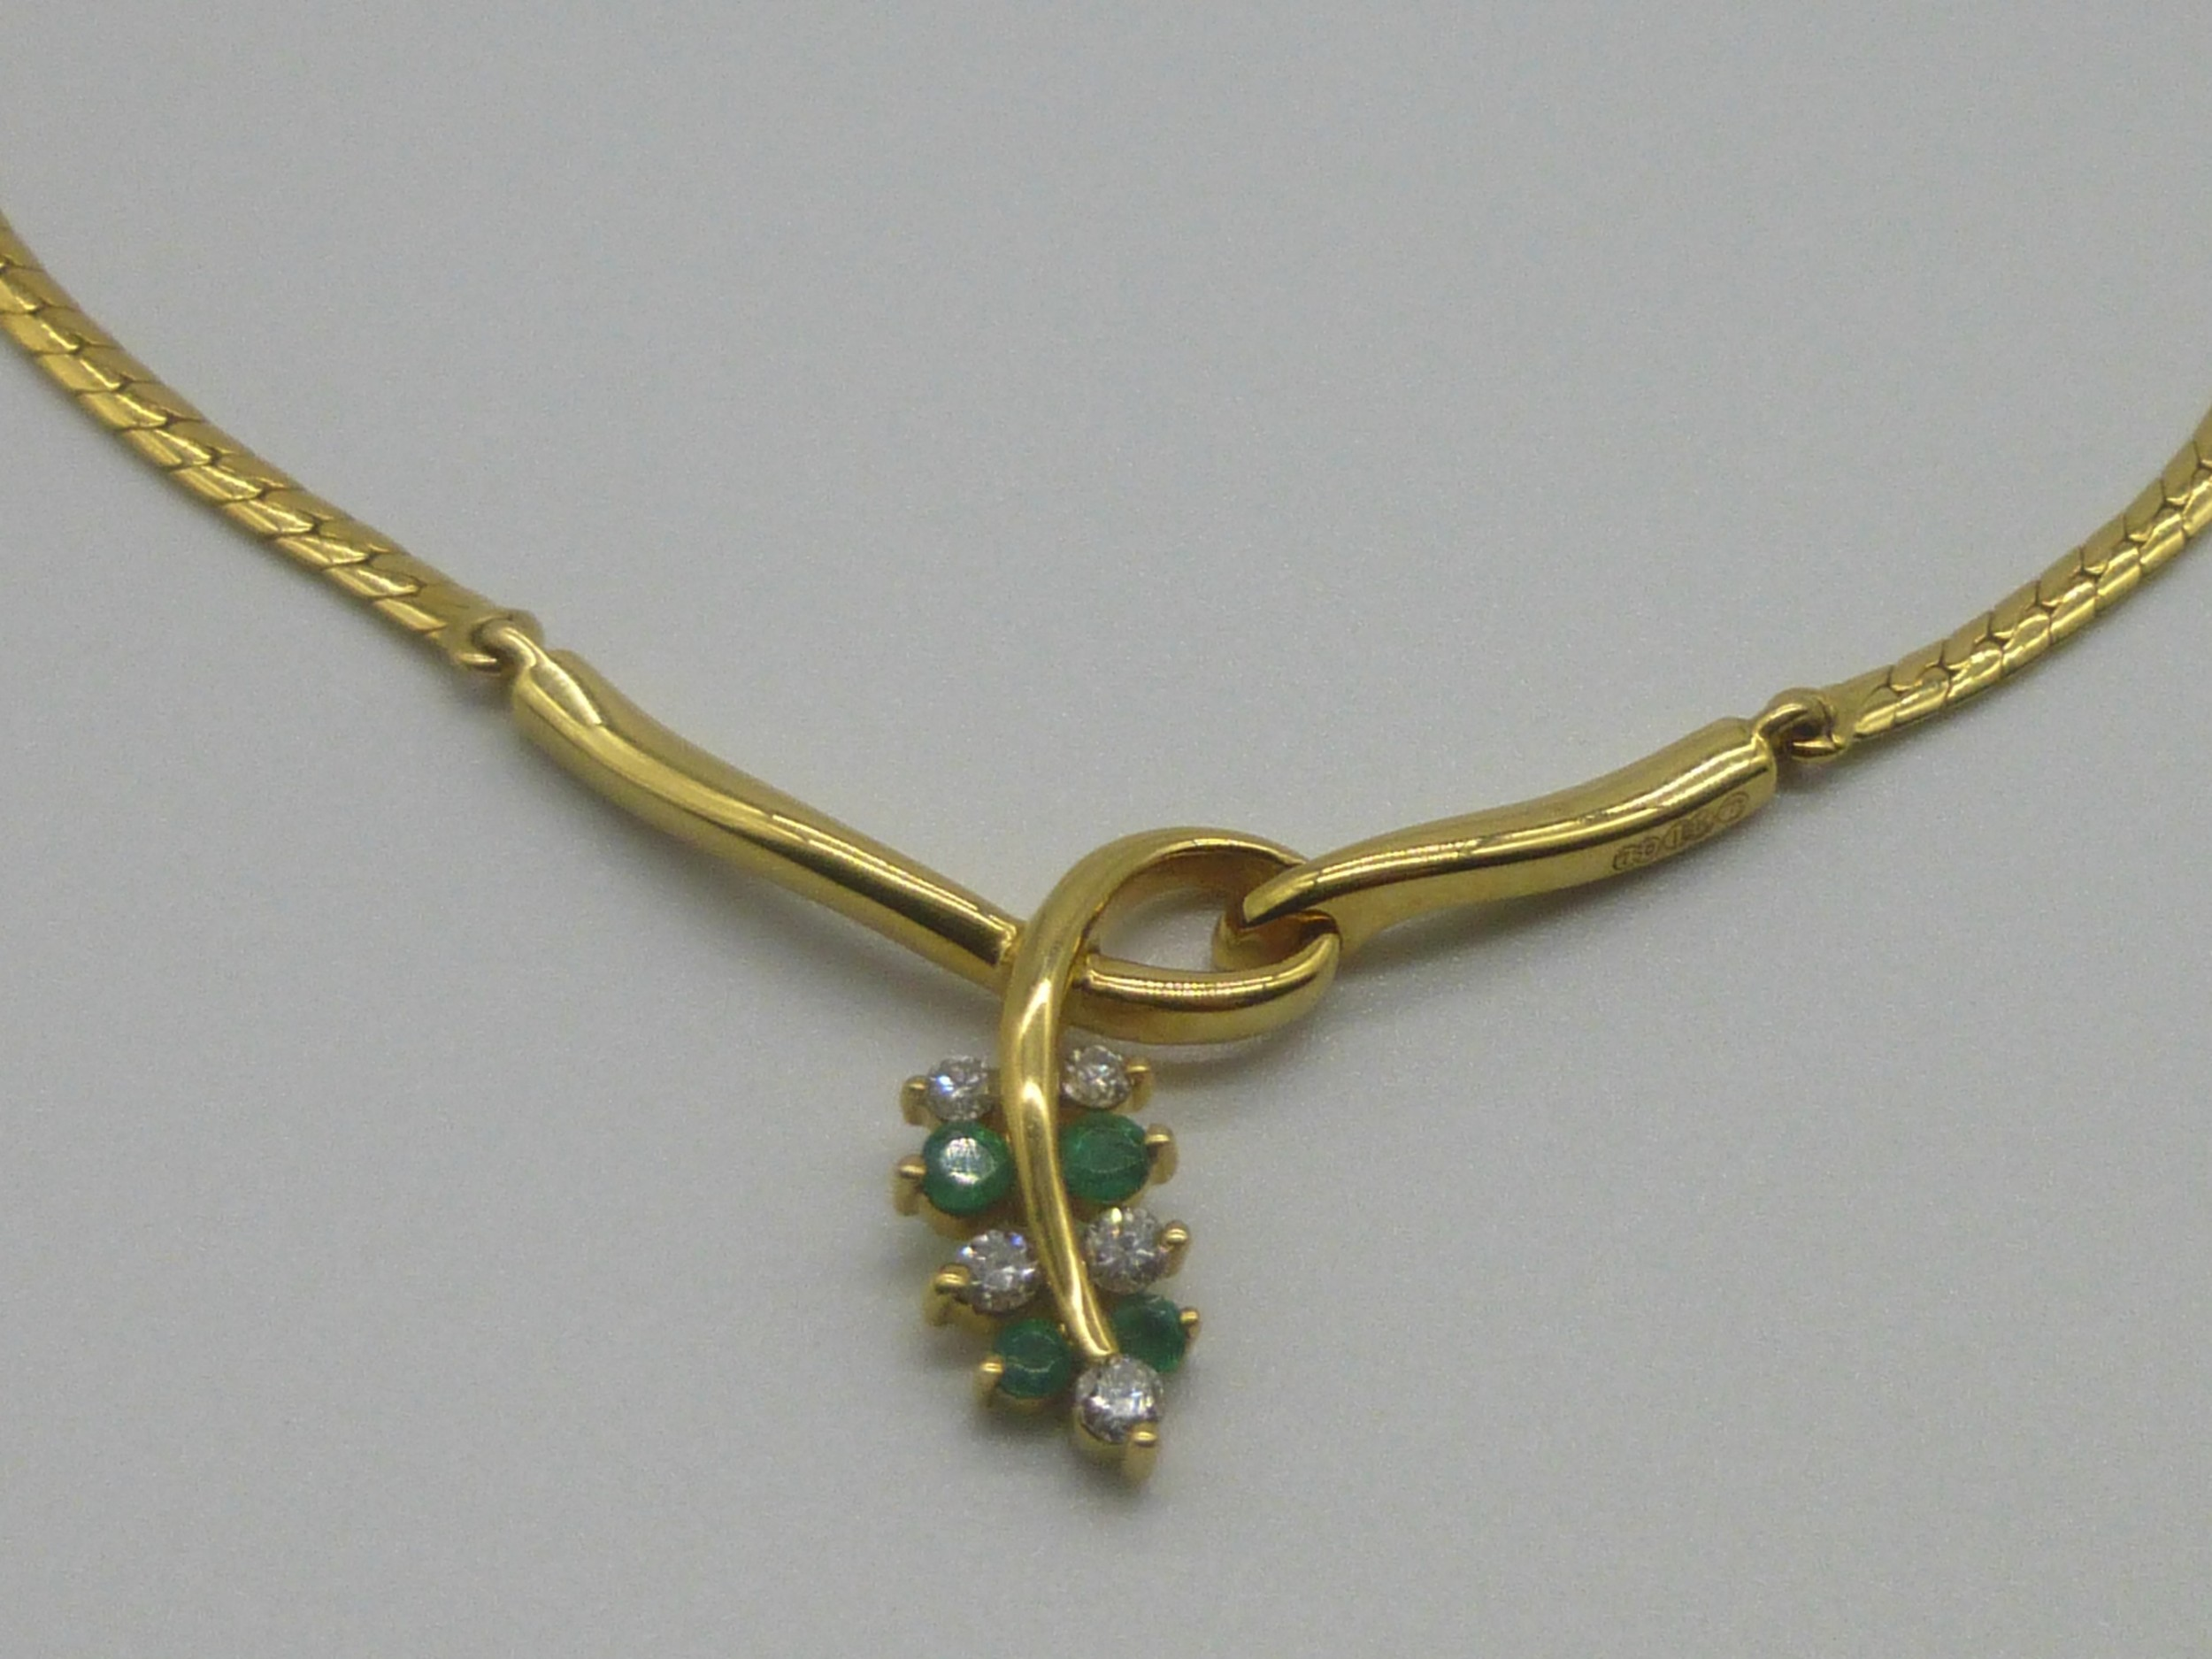 18ct gold emerald and diamond necklace